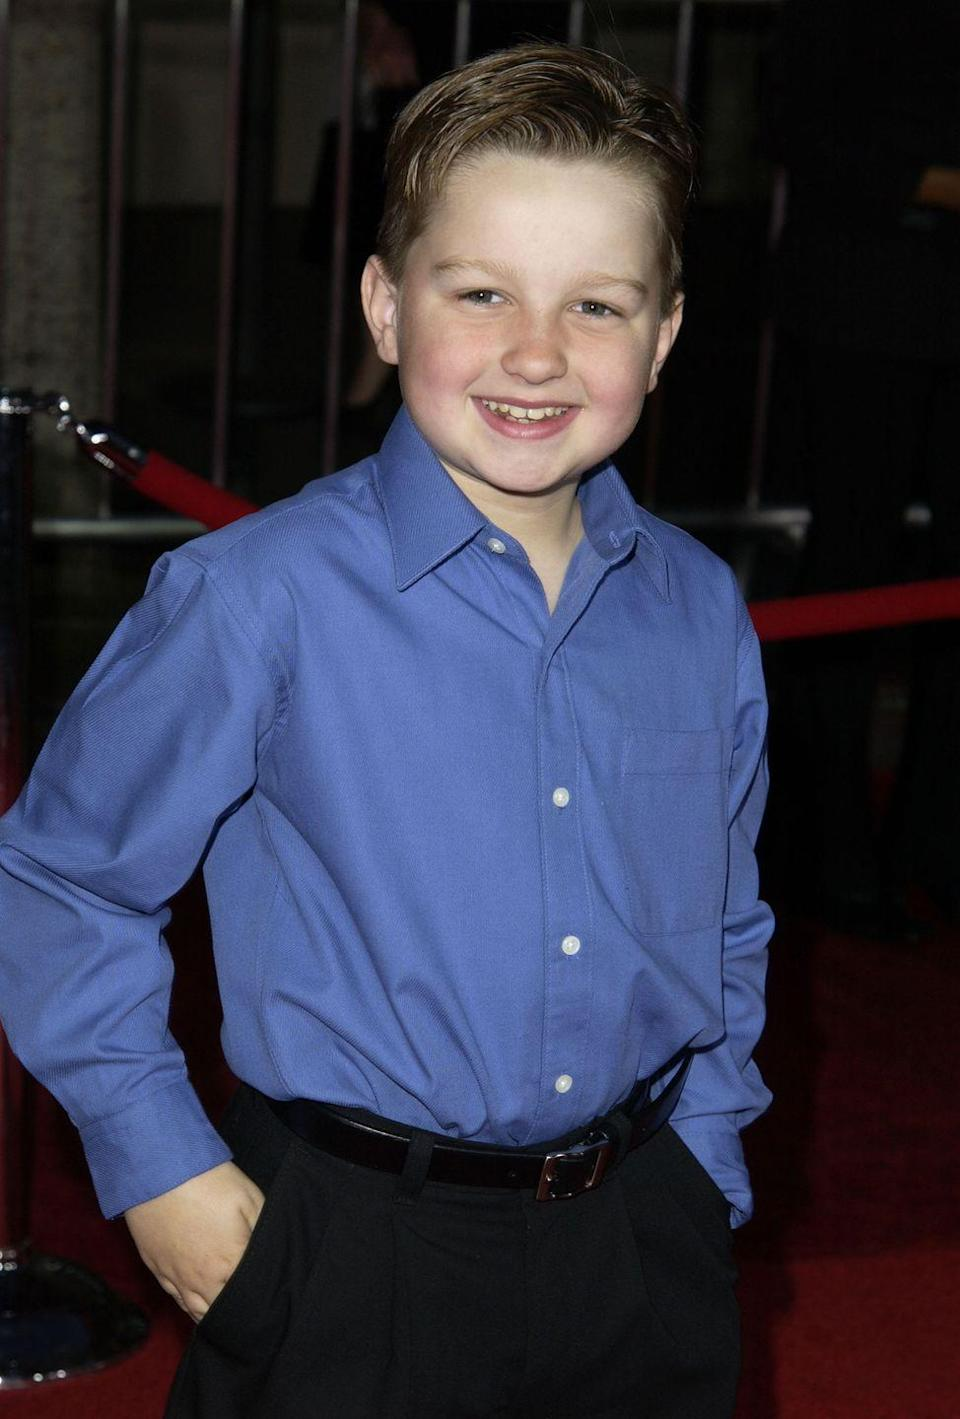 "<p>From 2003 until 2015, Angus T. Jones had a steady gig as Jake Harper on CBS's <em>Two and a Half Men</em>. Jones not only became one of the most well-known faces in television, but he also earned the title of <a href=""https://www.tvovermind.com/men-angus-jones-officially-highest-paid-hollywood/#:~:text=According%20to%20TMZ%20and%20The,Jones'%20status%20as%20a%20minor."" rel=""nofollow noopener"" target=""_blank"" data-ylk=""slk:highest paid child actor"" class=""link rapid-noclick-resp"">highest paid child actor</a> on TV.</p>"